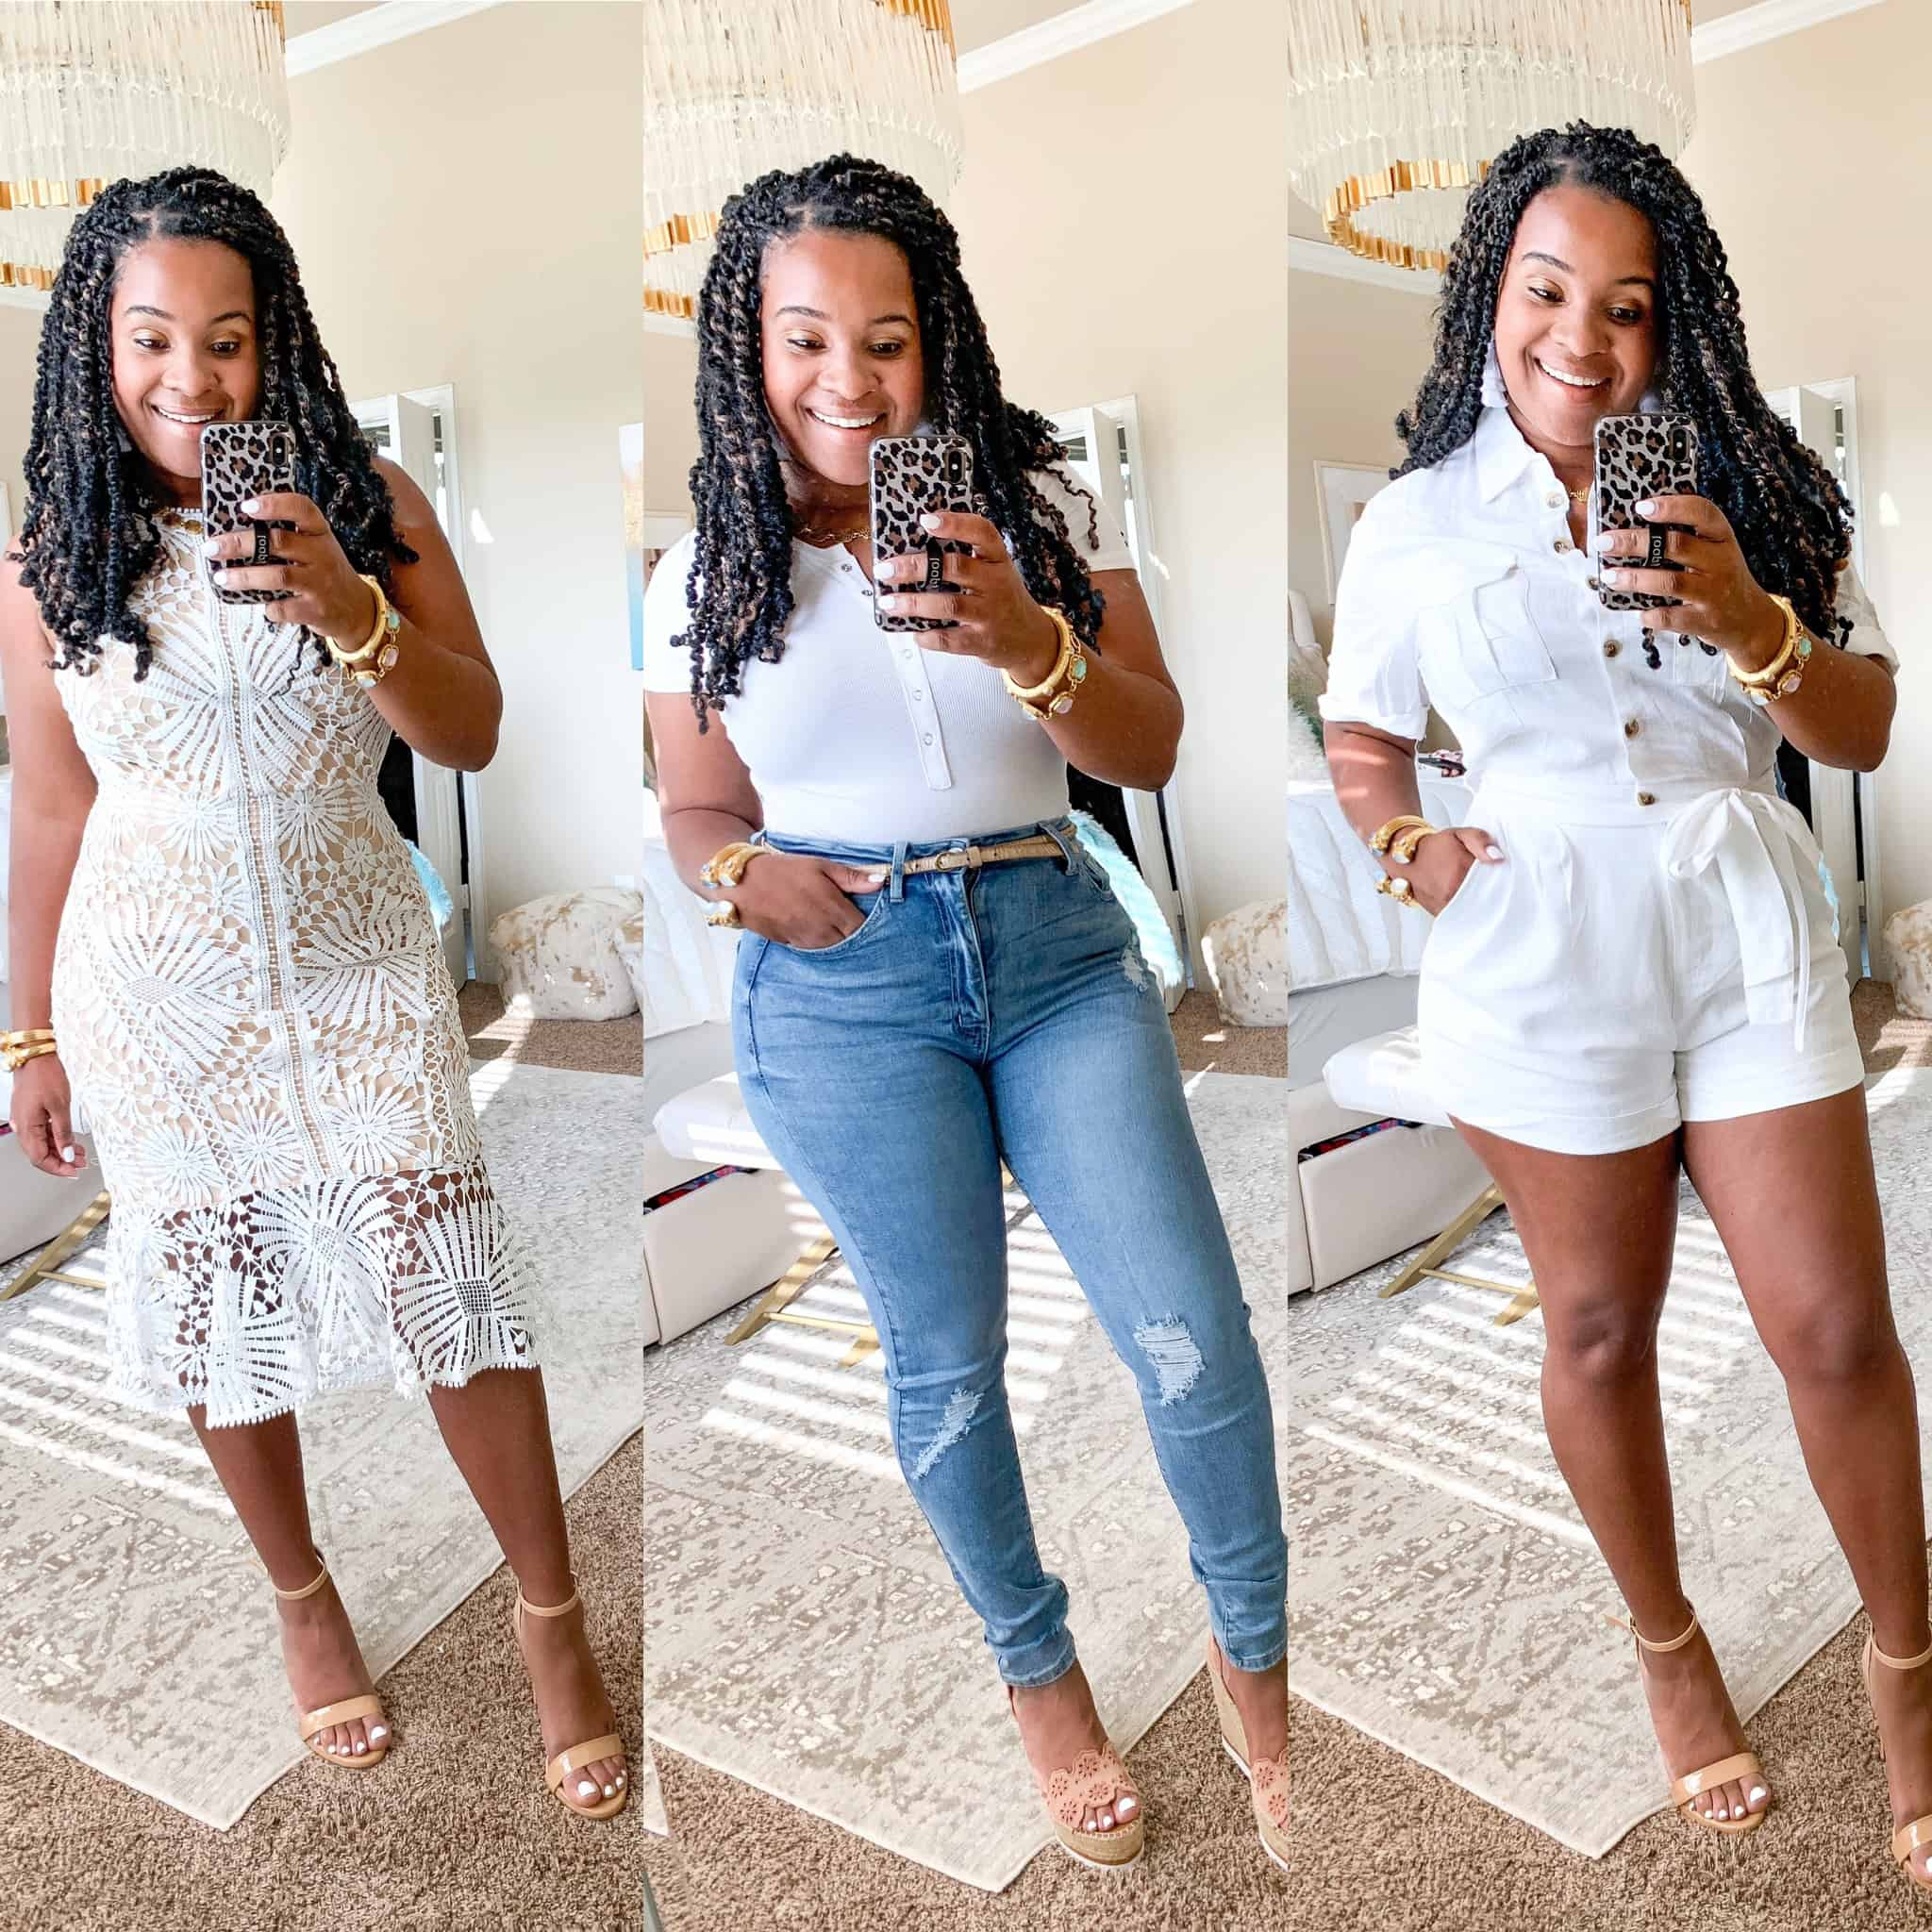 How To Wear White Before & After Labor Day by popular Dallas fashion blog, Glamorous Versatility: collage image of a woman wearing a white lace dress, white button up shirt, and white romper from Red Dress Boutique.